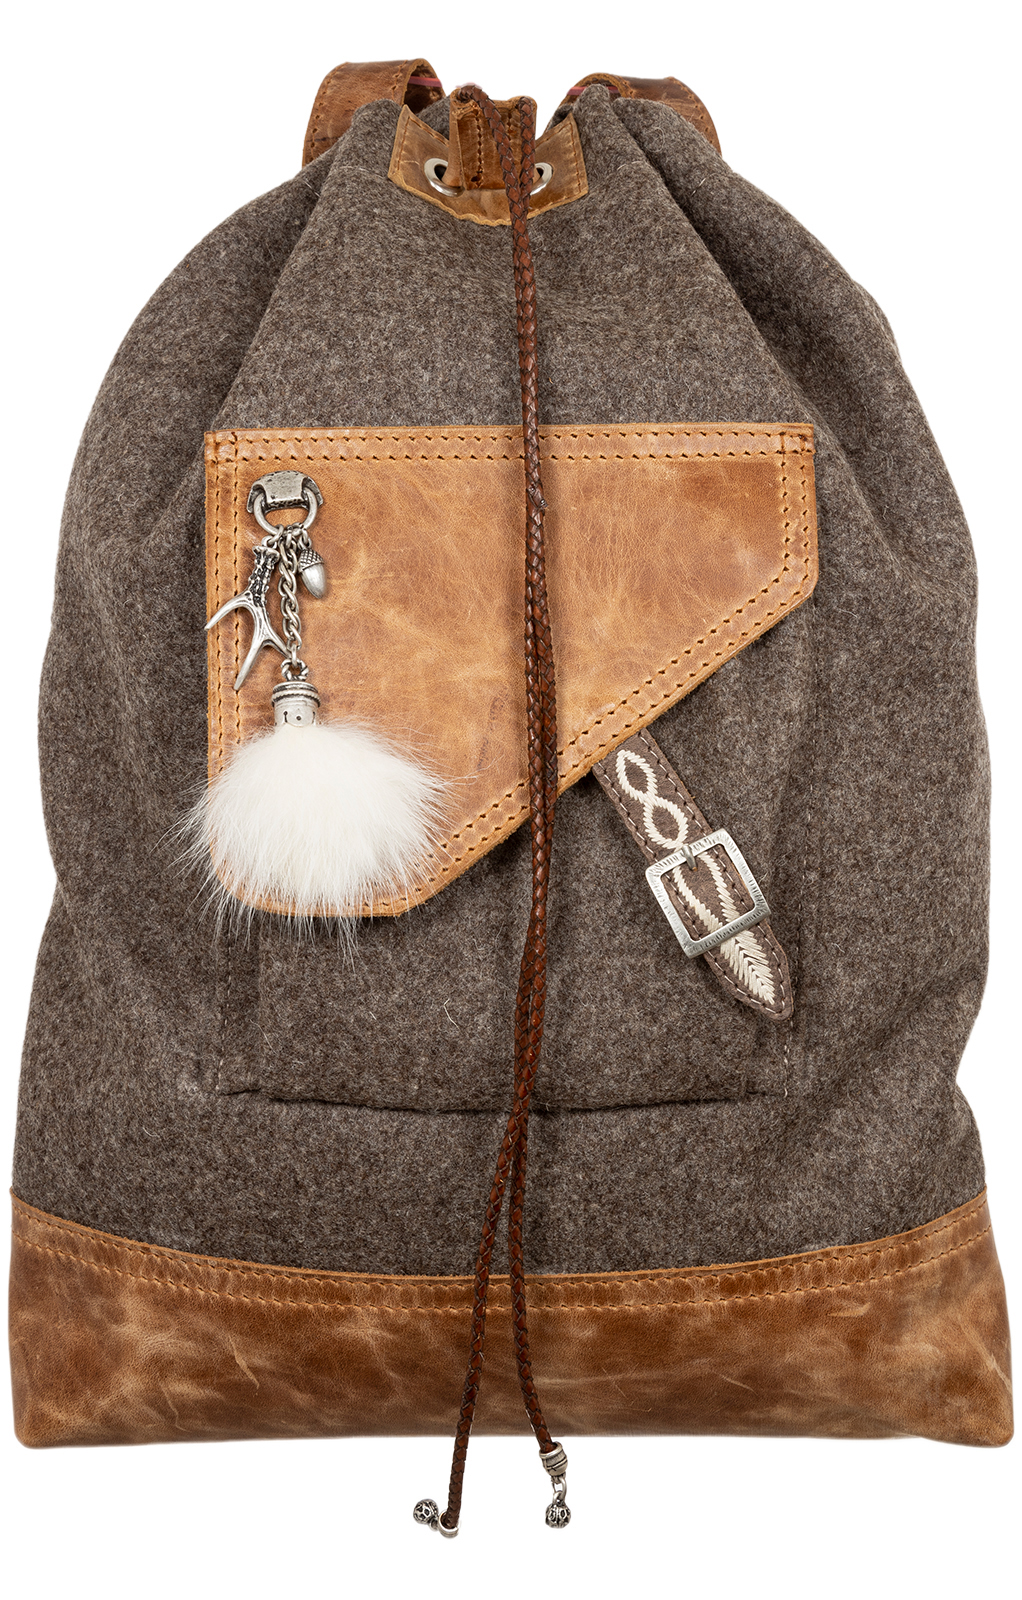 Traditional Backpack 158-3743 brown MT von Sima